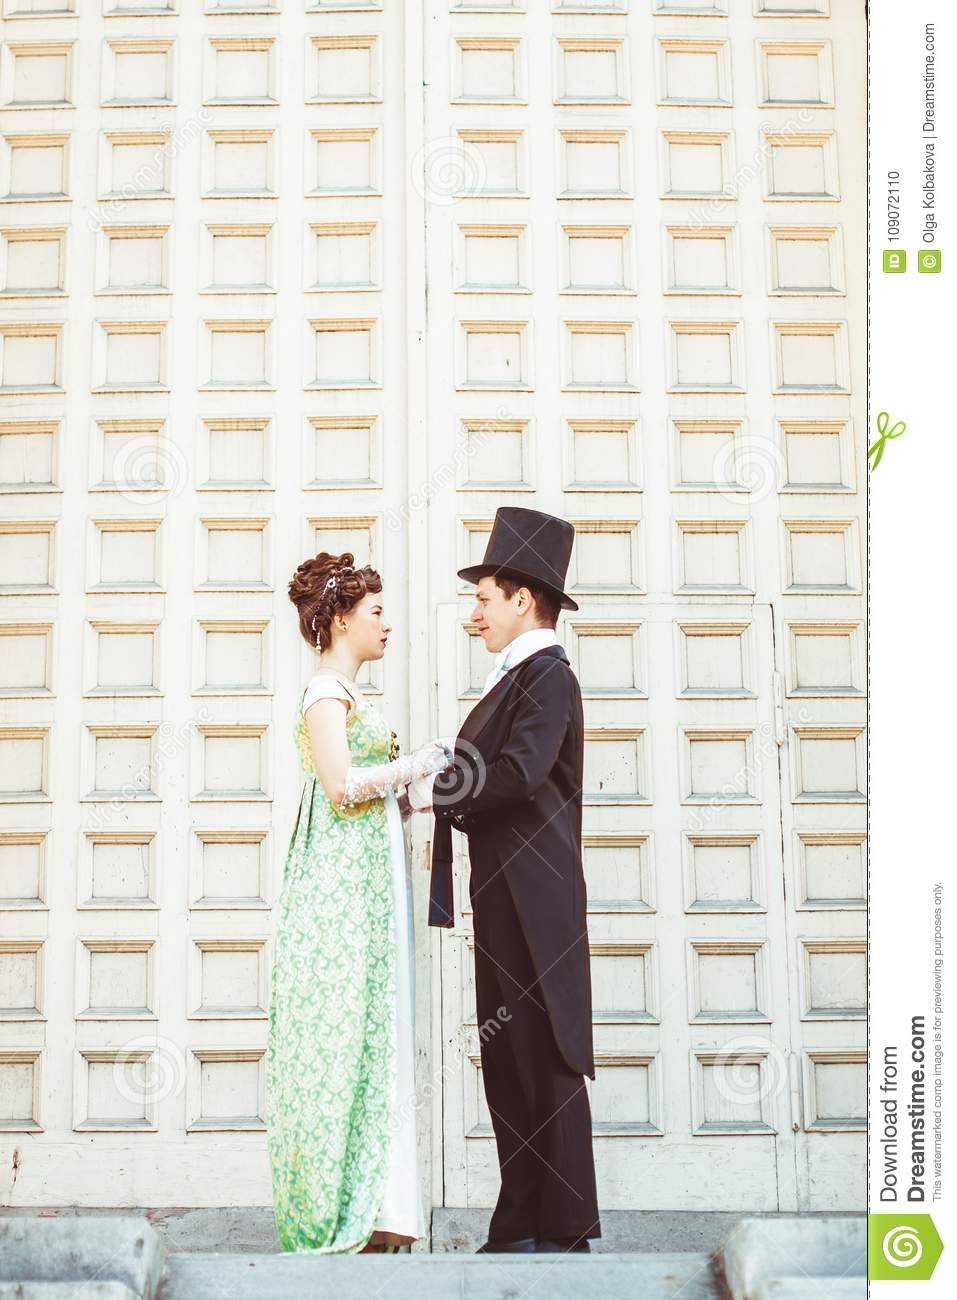 Couple In Evening Clothes Stock Photo Image Of Hairstyle